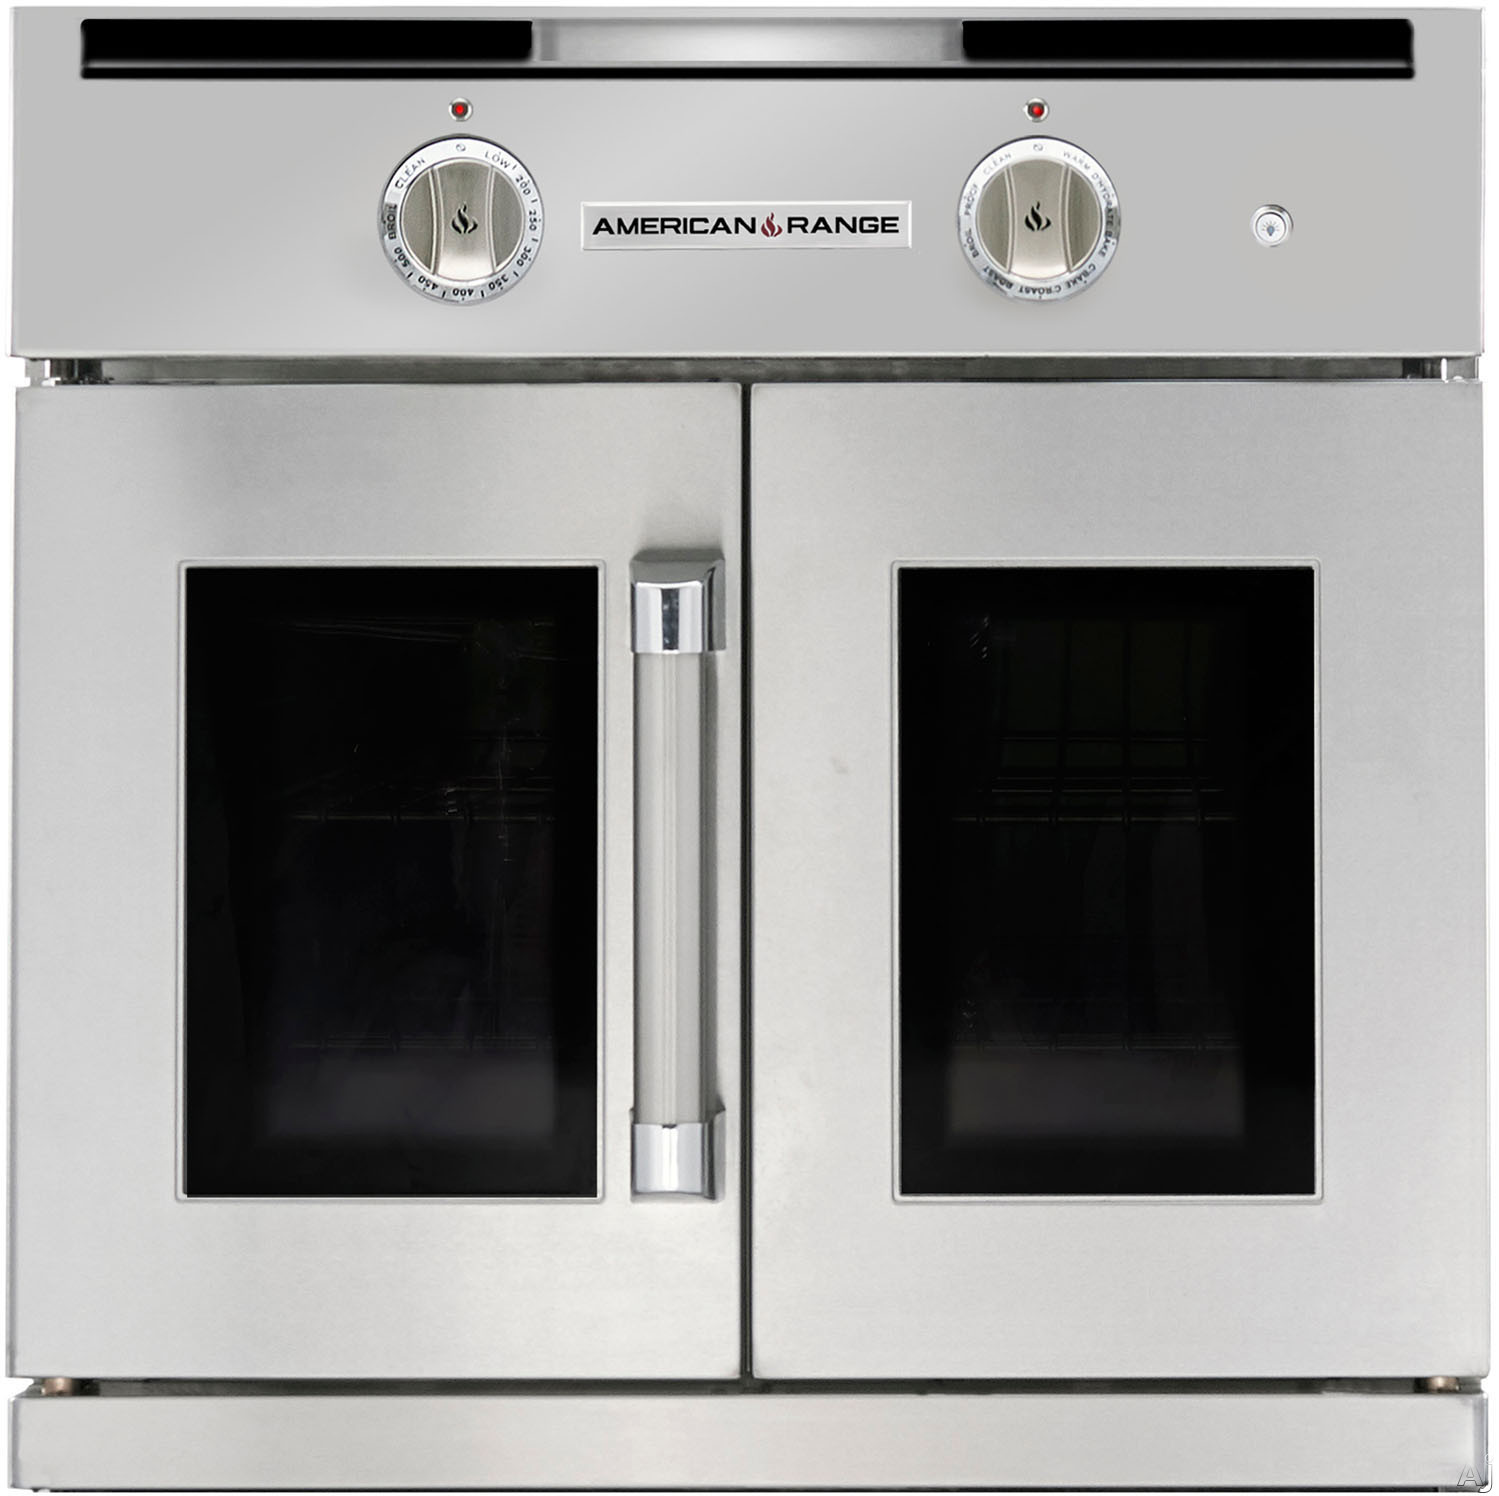 American Range Legacy Series AROFG30 30 Inch Single French Door Gas Wall Oven with 4.7 cu. ft. Capacity, Innovection Convection, Manual Clean, Infrared Broiler and Porcelainized Interior